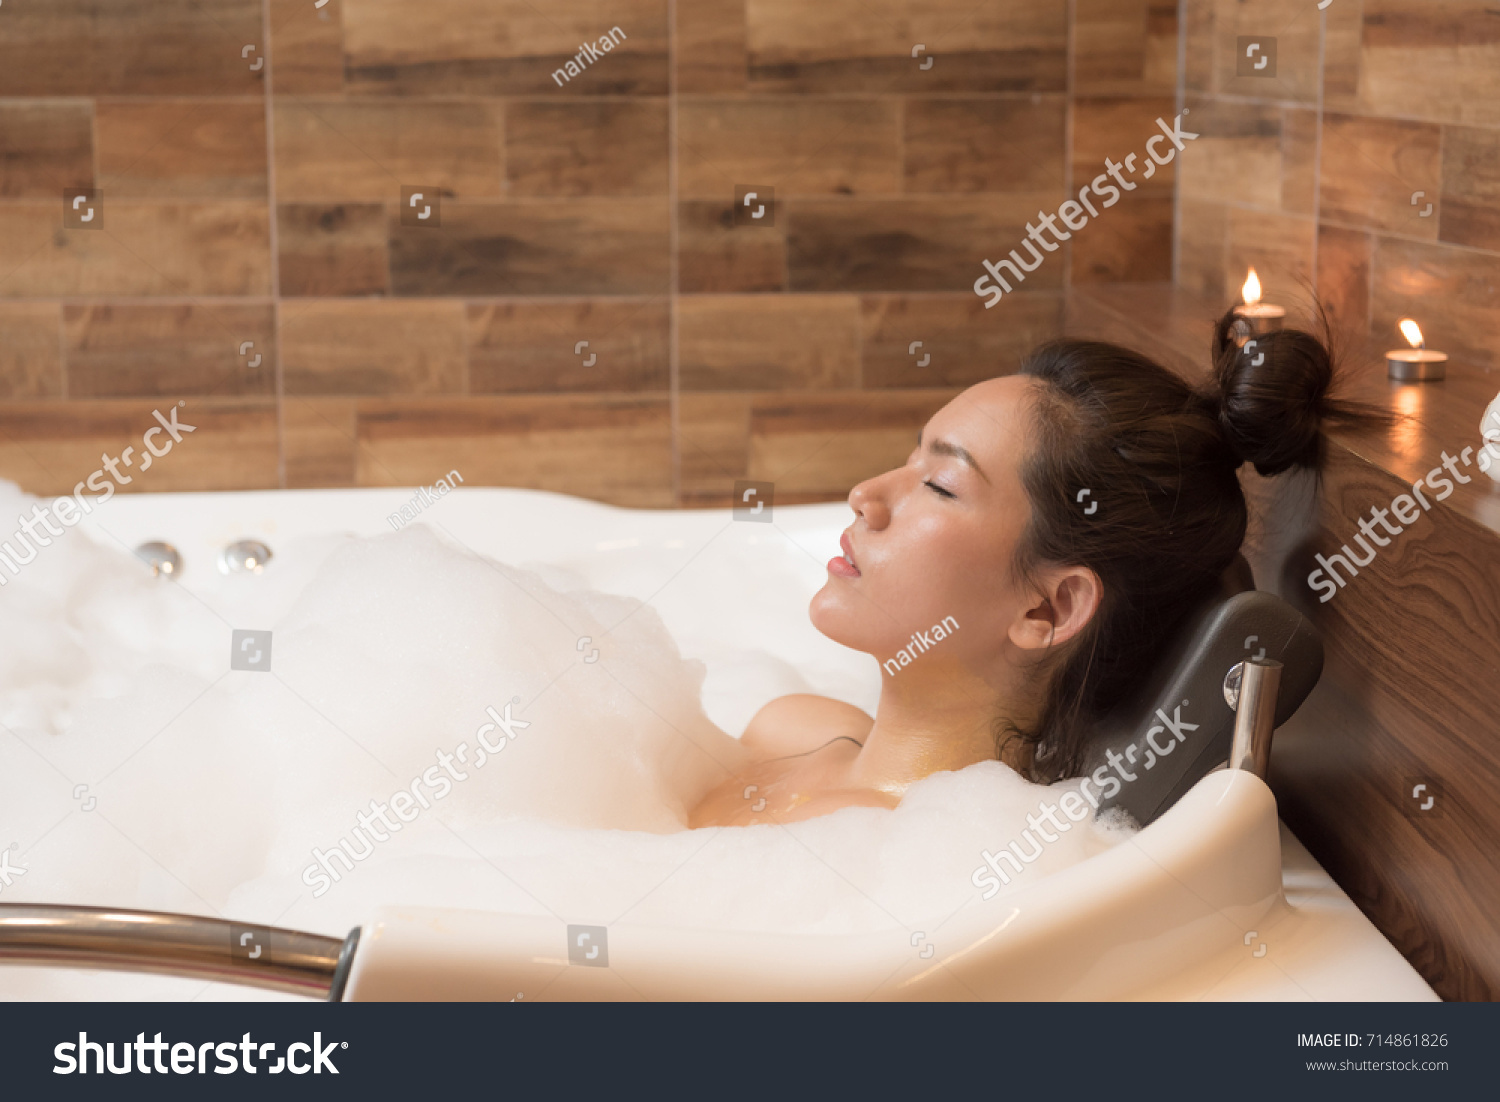 Bathing woman relaxing bath smiling relaxing stock photo 714861826 shutterstock - Relaxing japanese bathroom design for ultimate relaxation bath ...